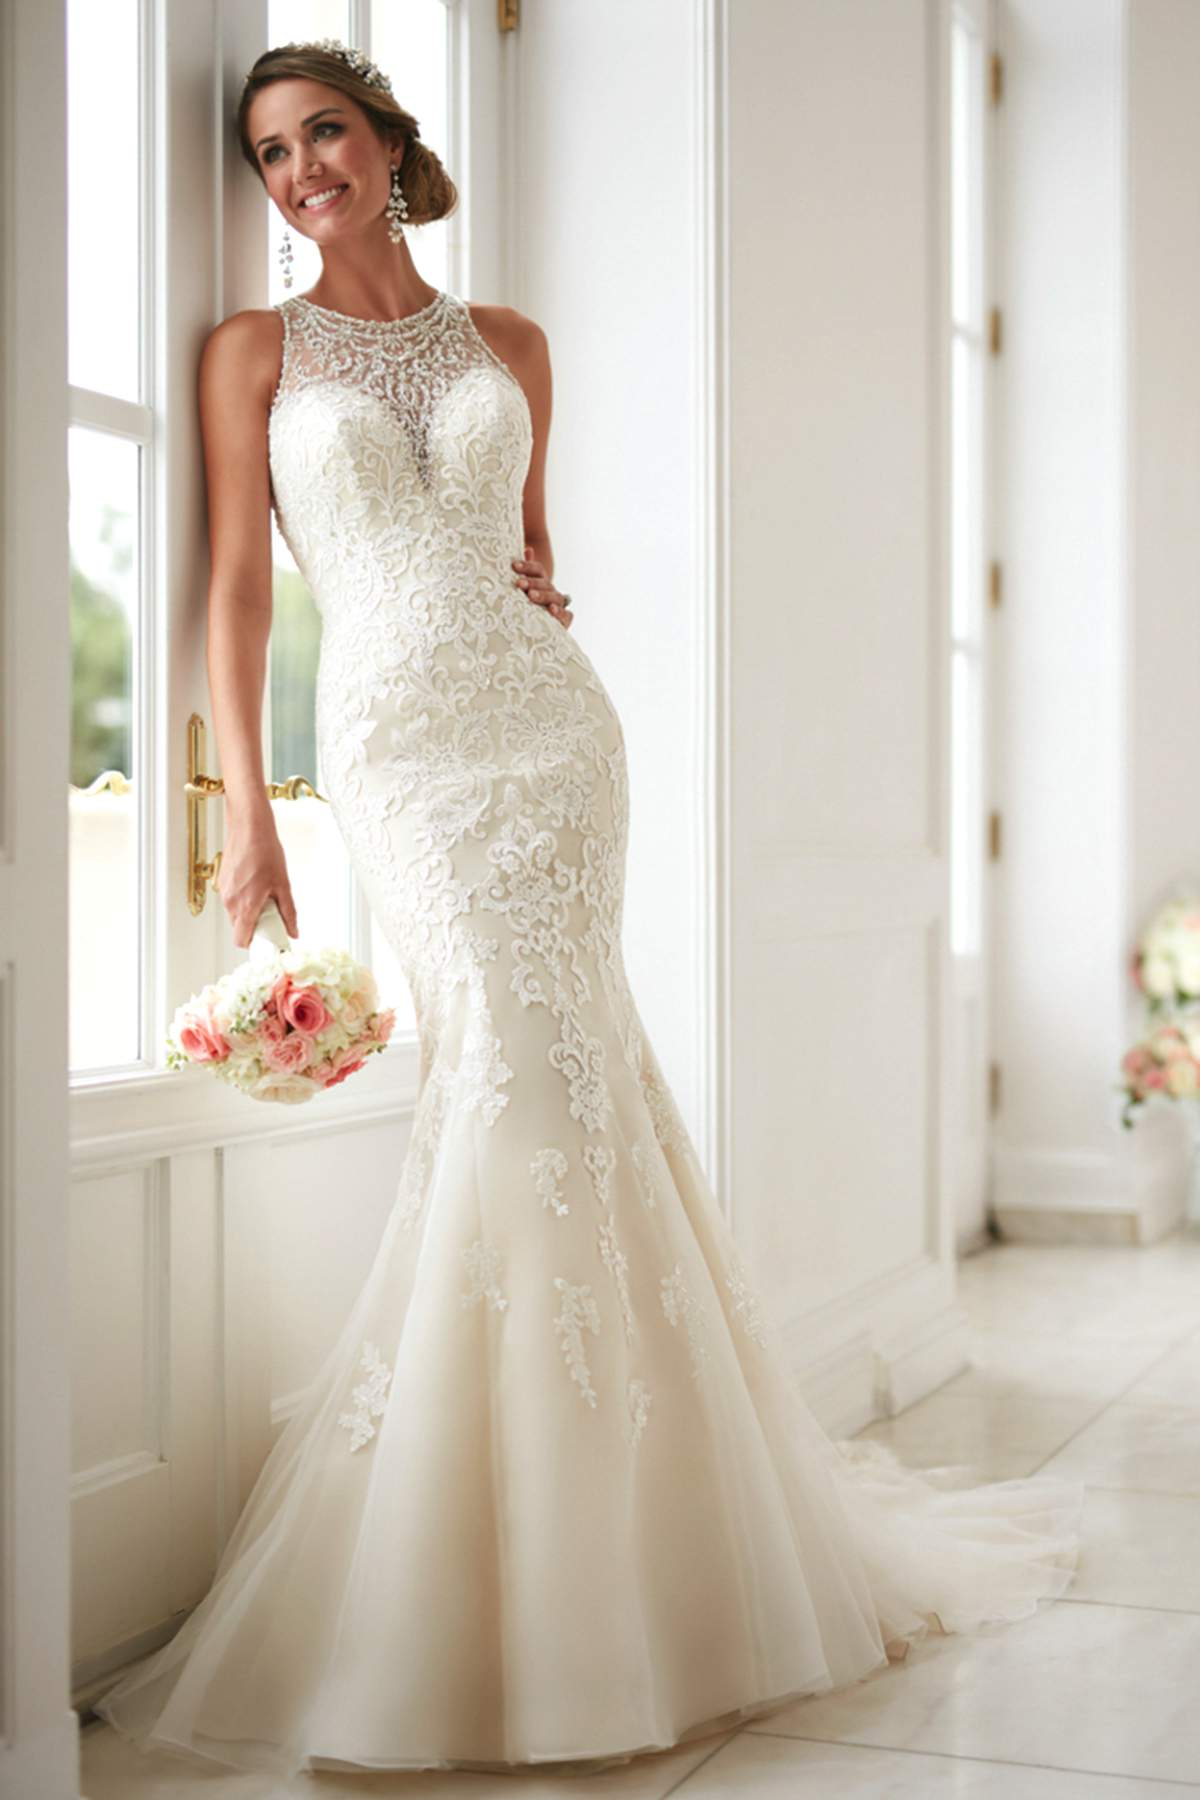 f9cdfcde2d65 Style 6435 by Stella York - Find Your Dream Dress